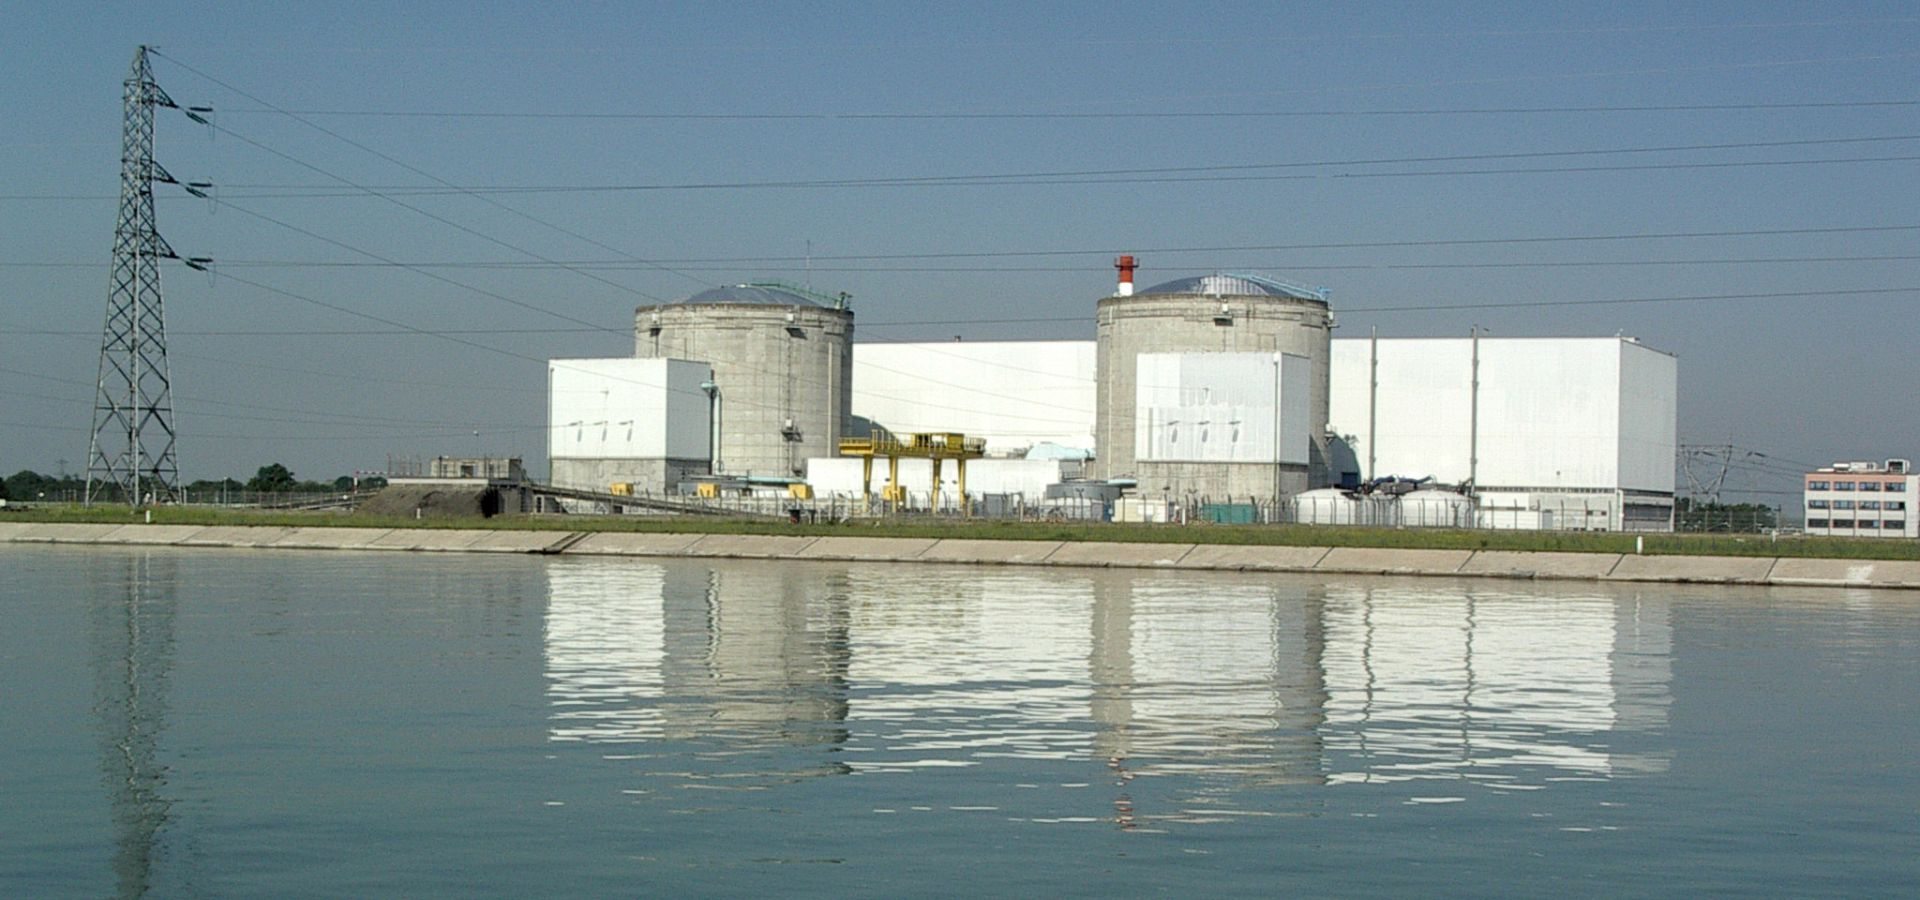 The nuclear power plant in Fessenheim